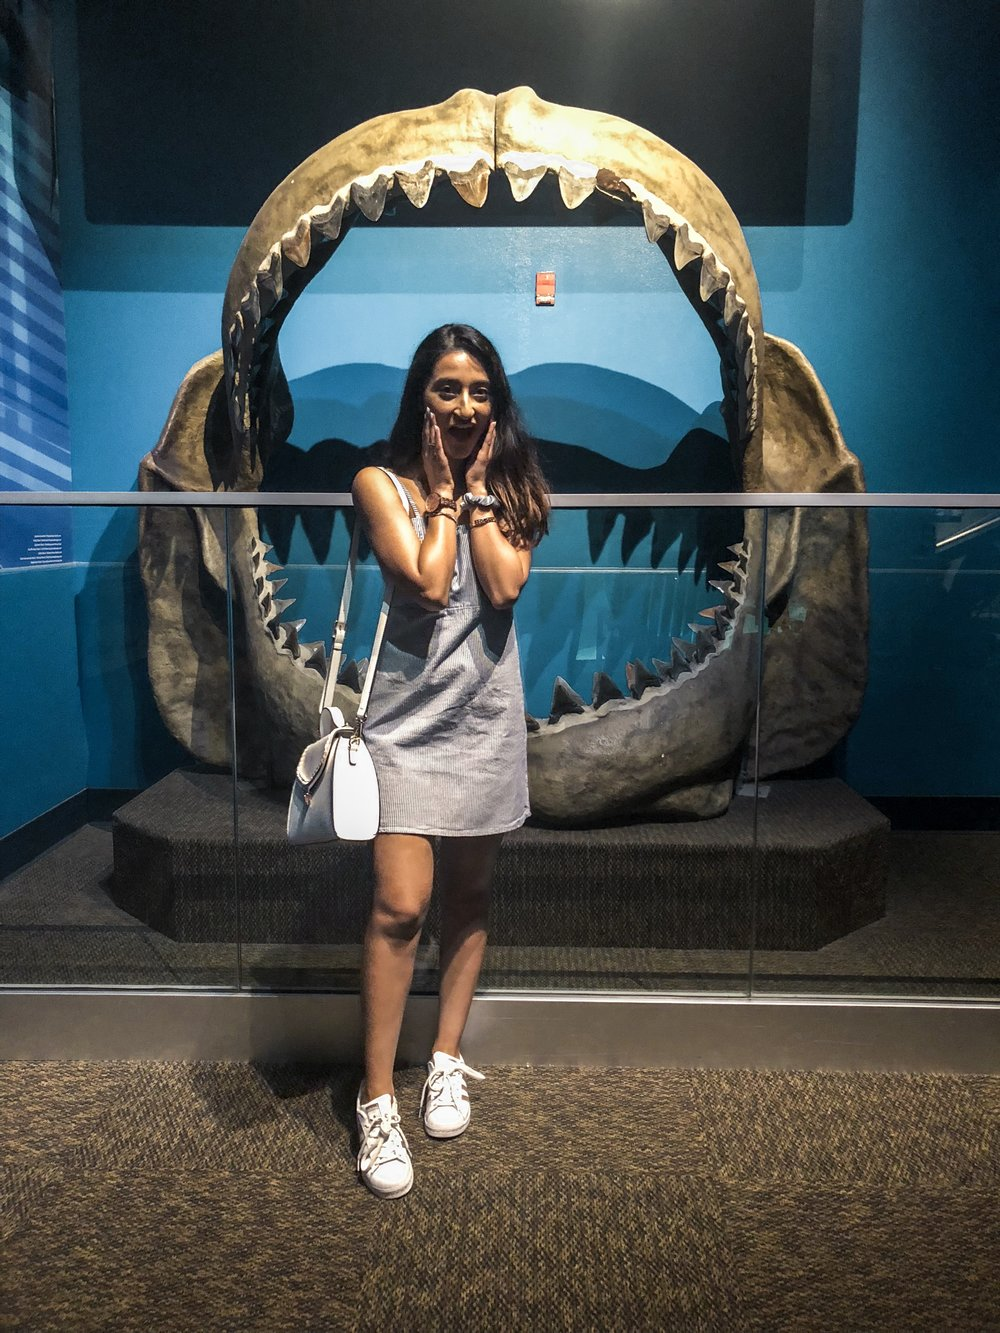 The largest shark ancestor could eat me whole!